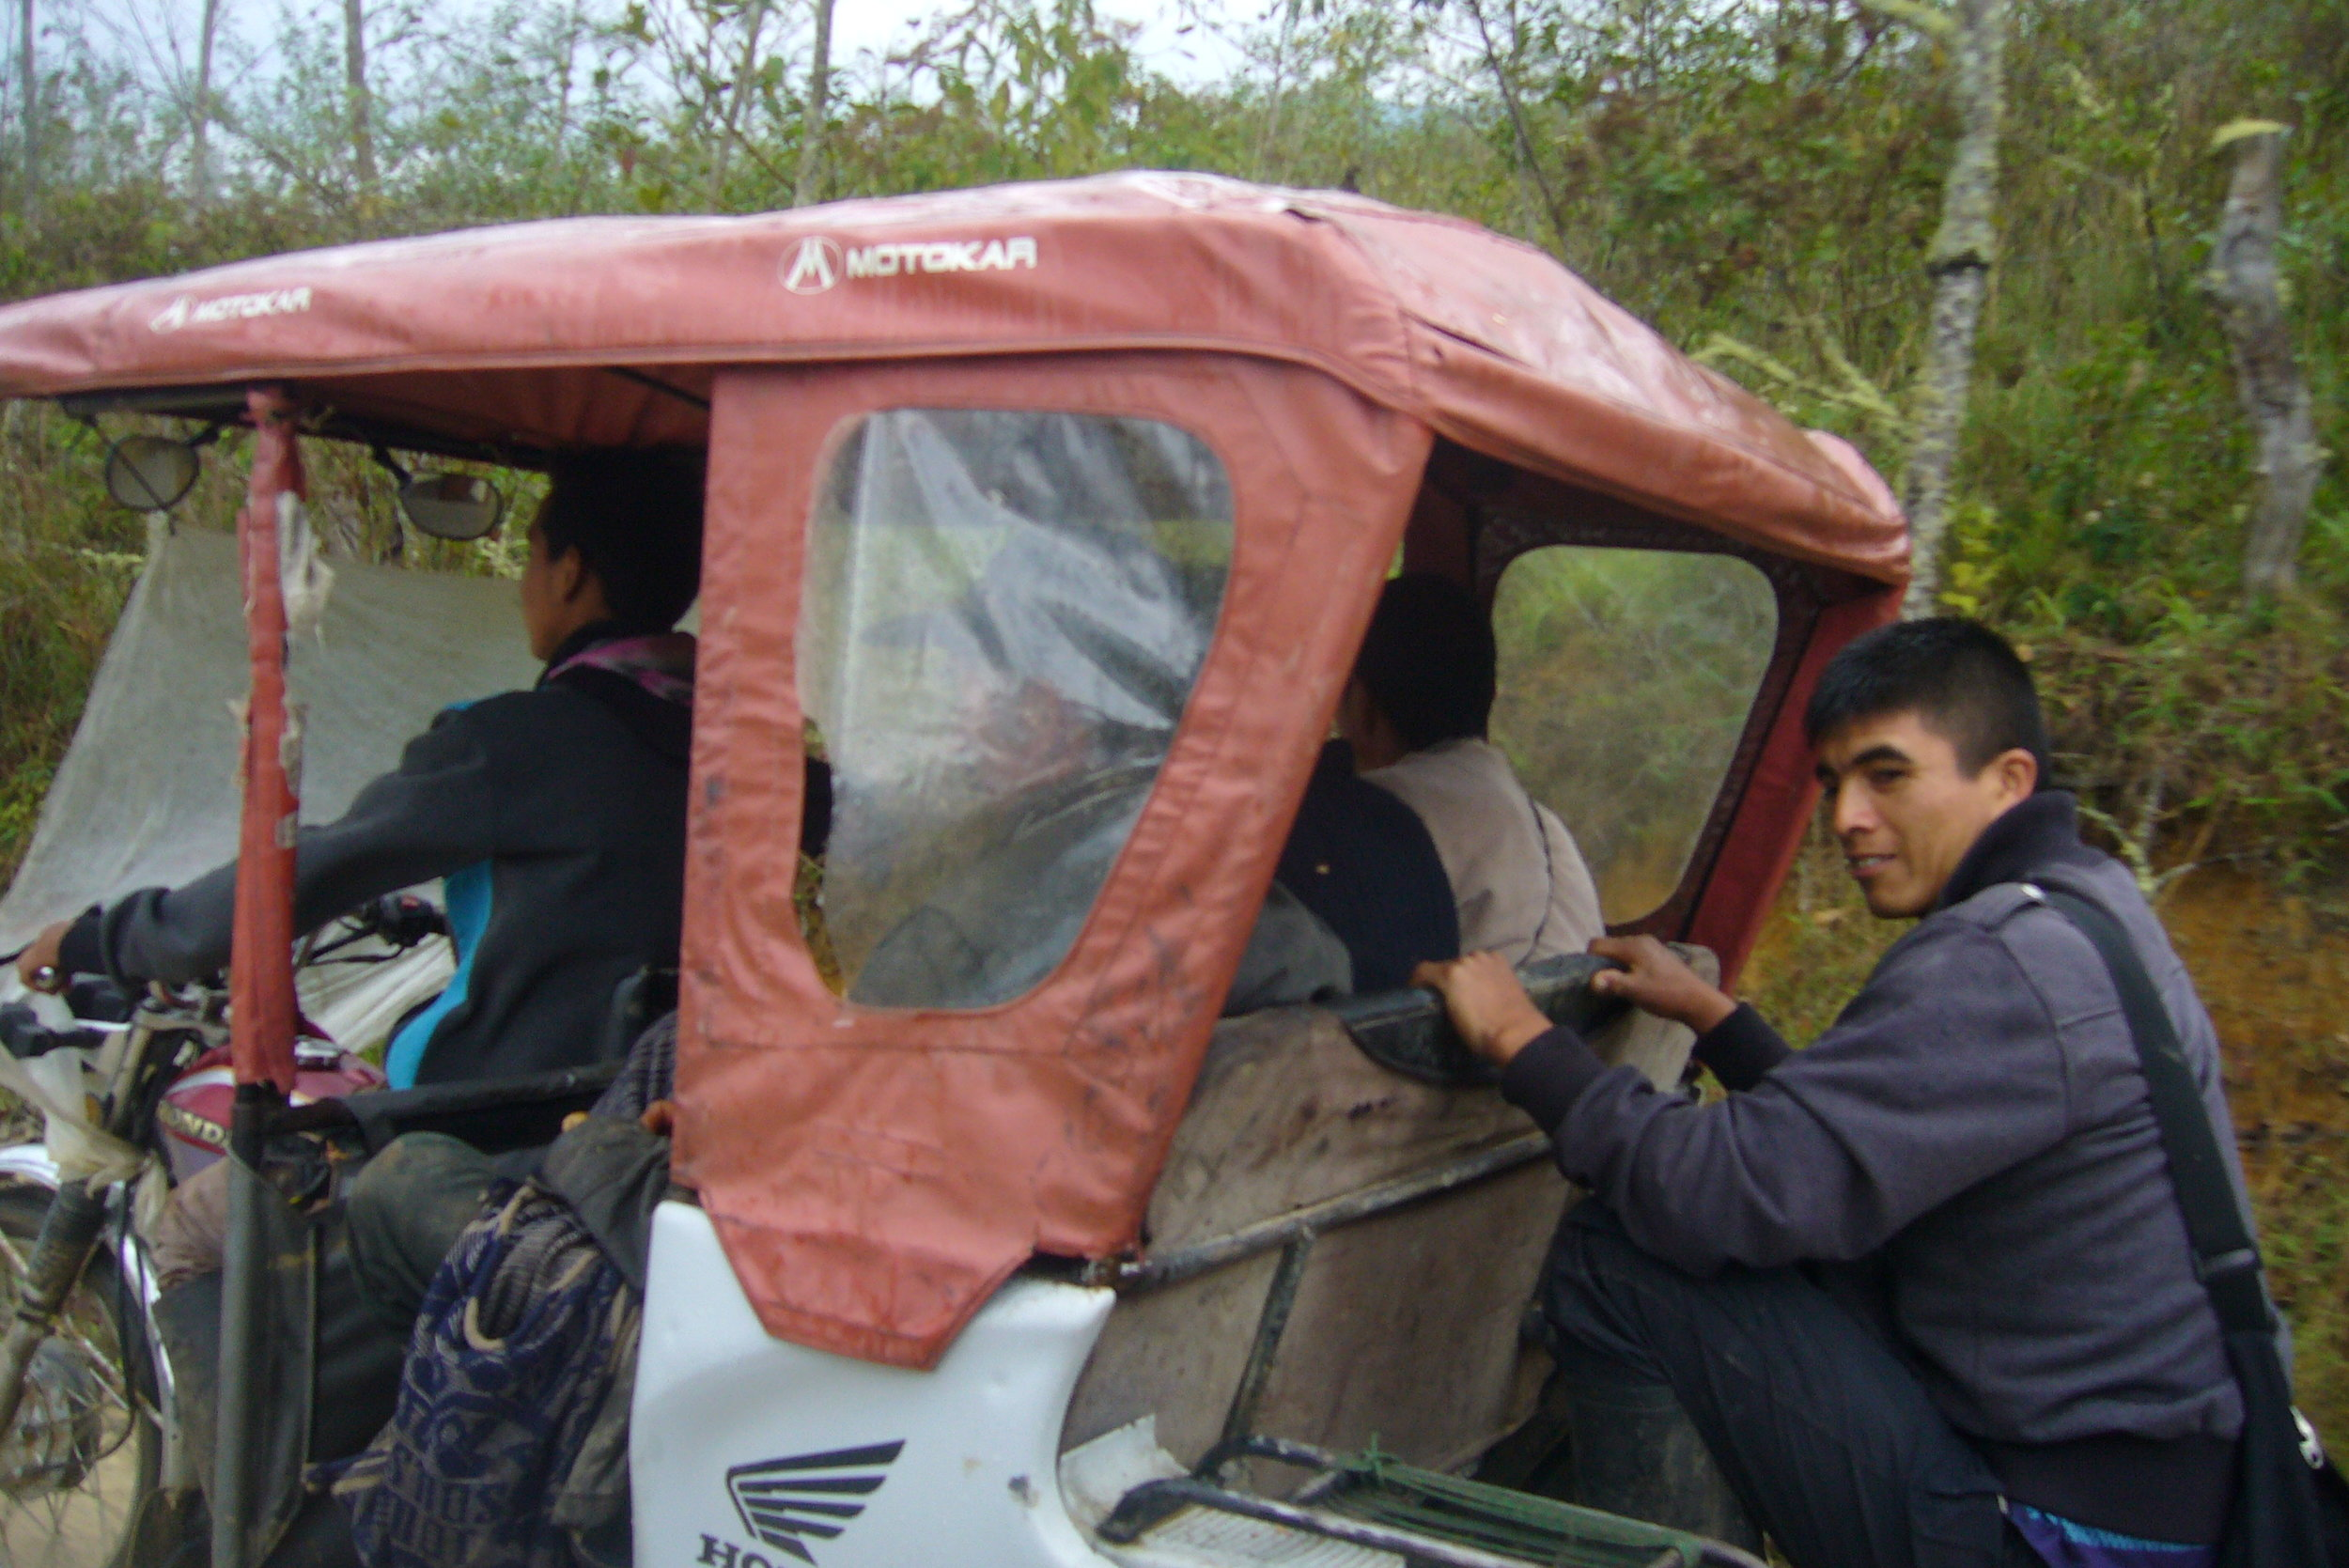 Making the most of a  mototaxi' s capacity.